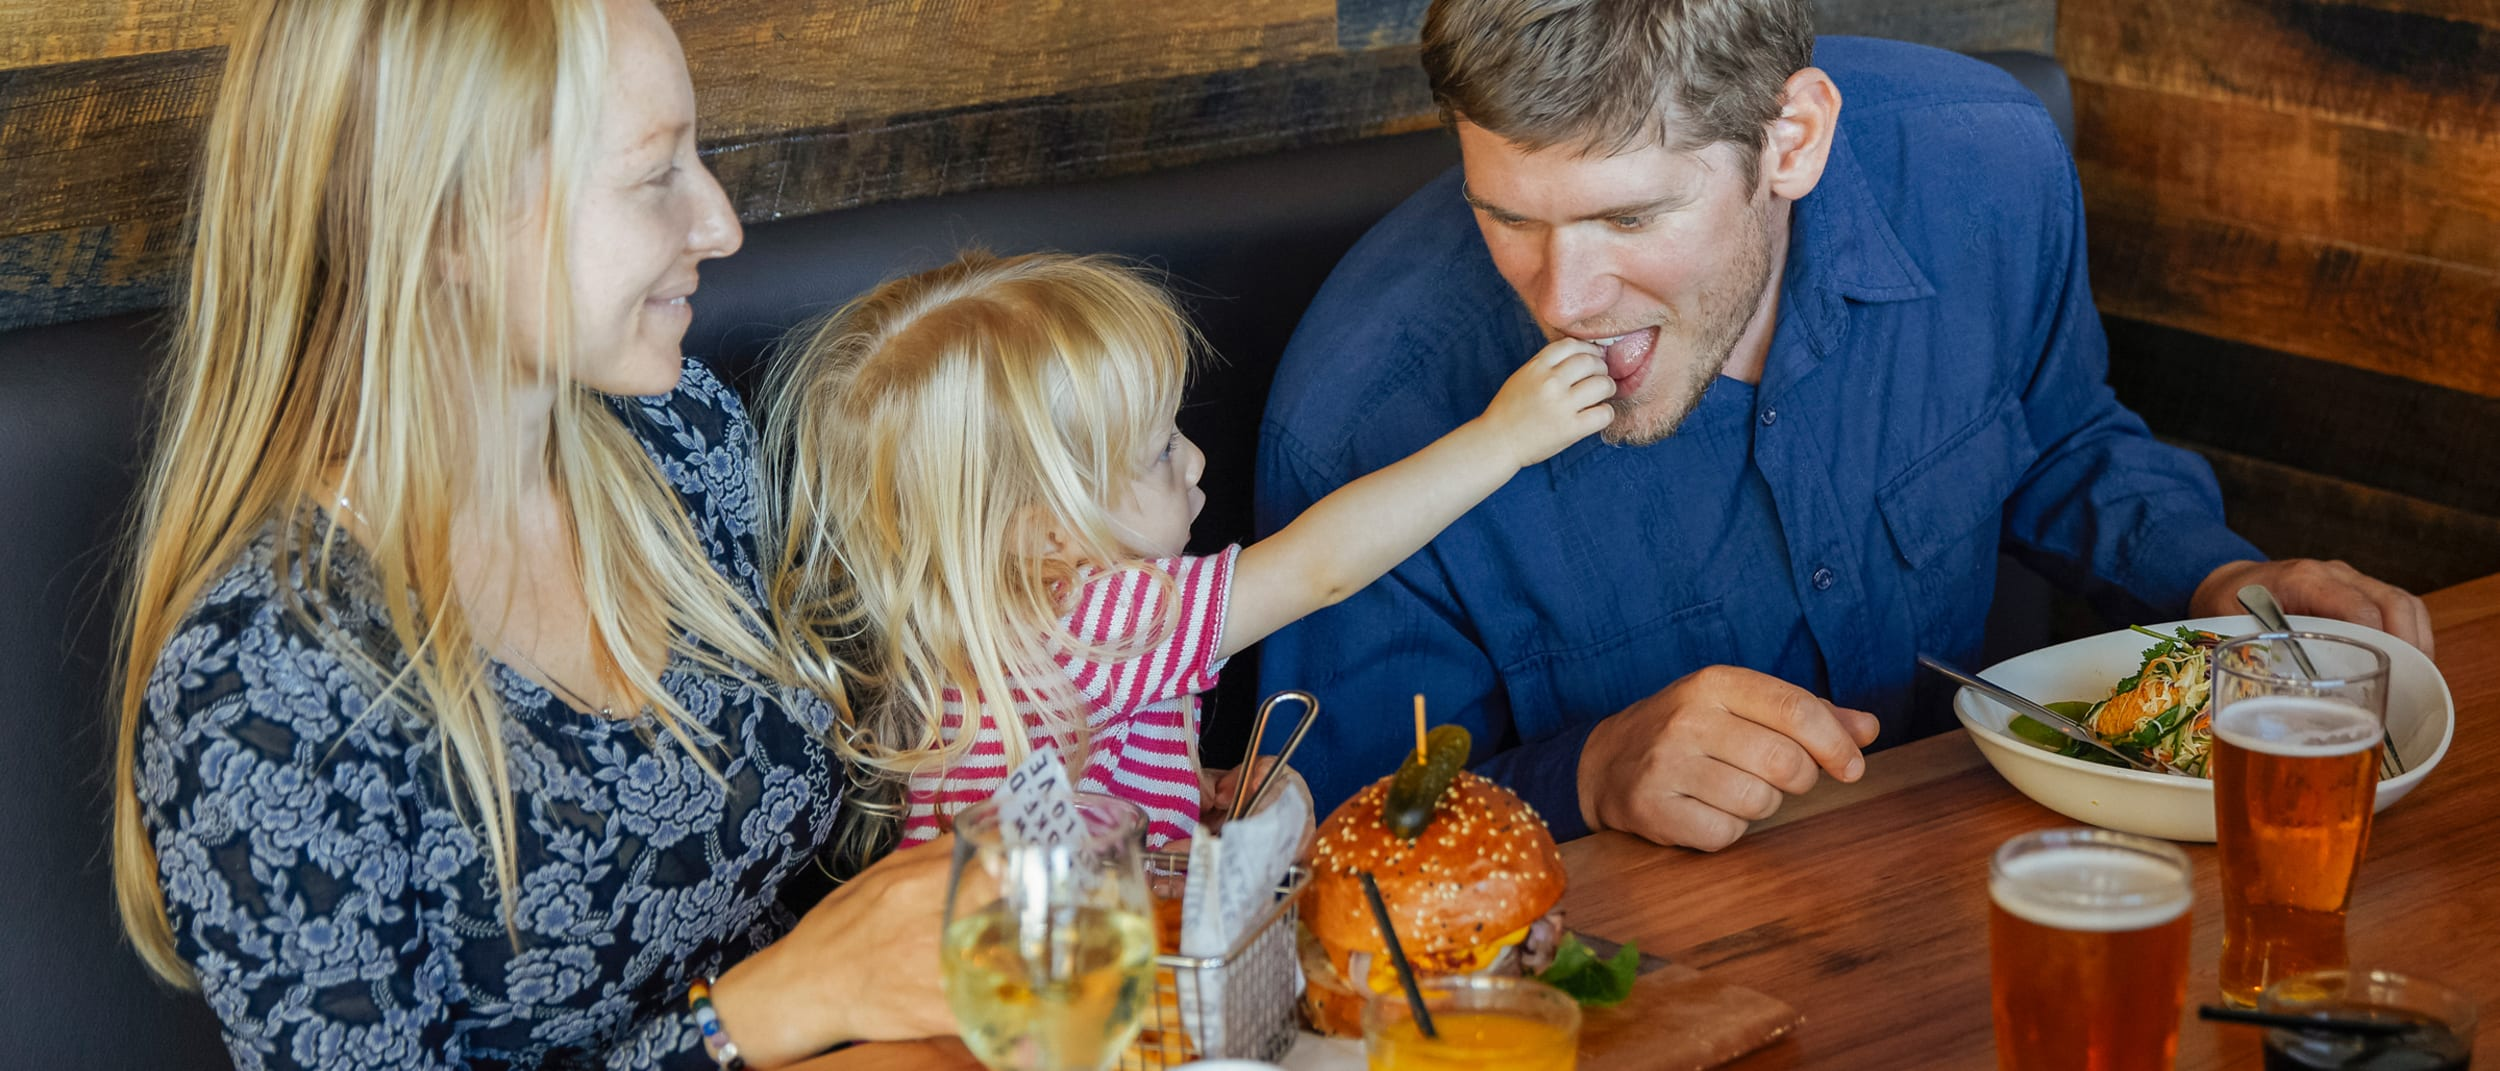 Treat Dad to a meal he'll love this Father's Day